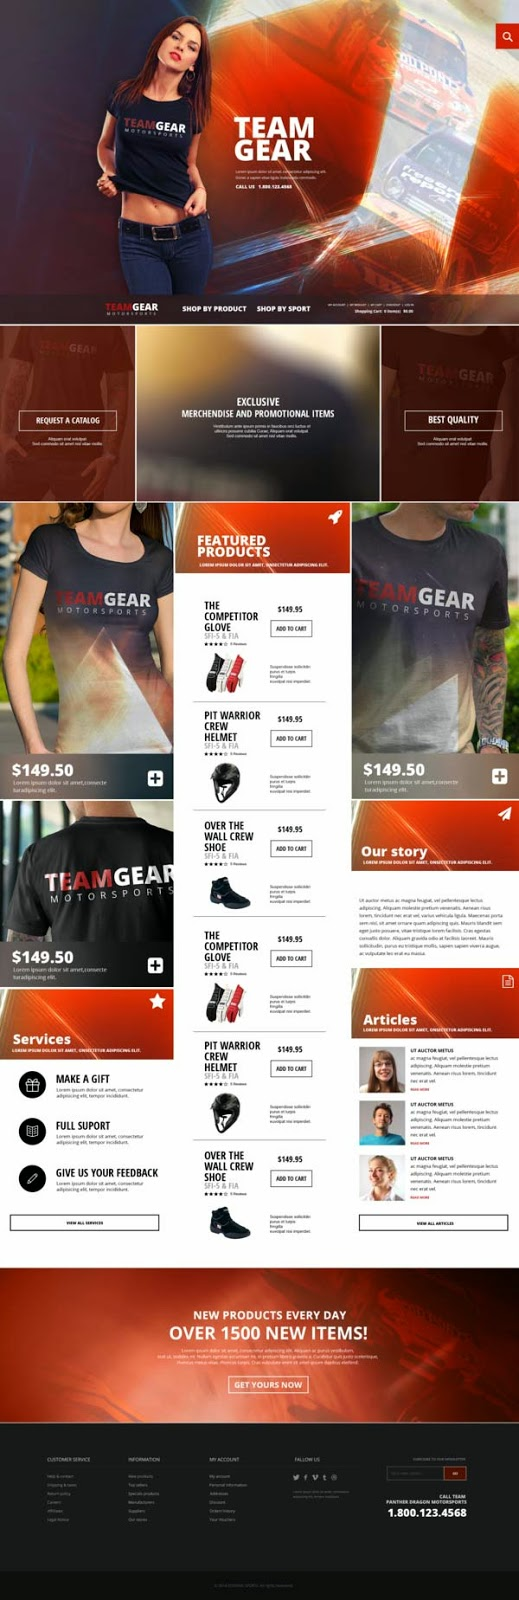 Team Gear – Online Shop Template